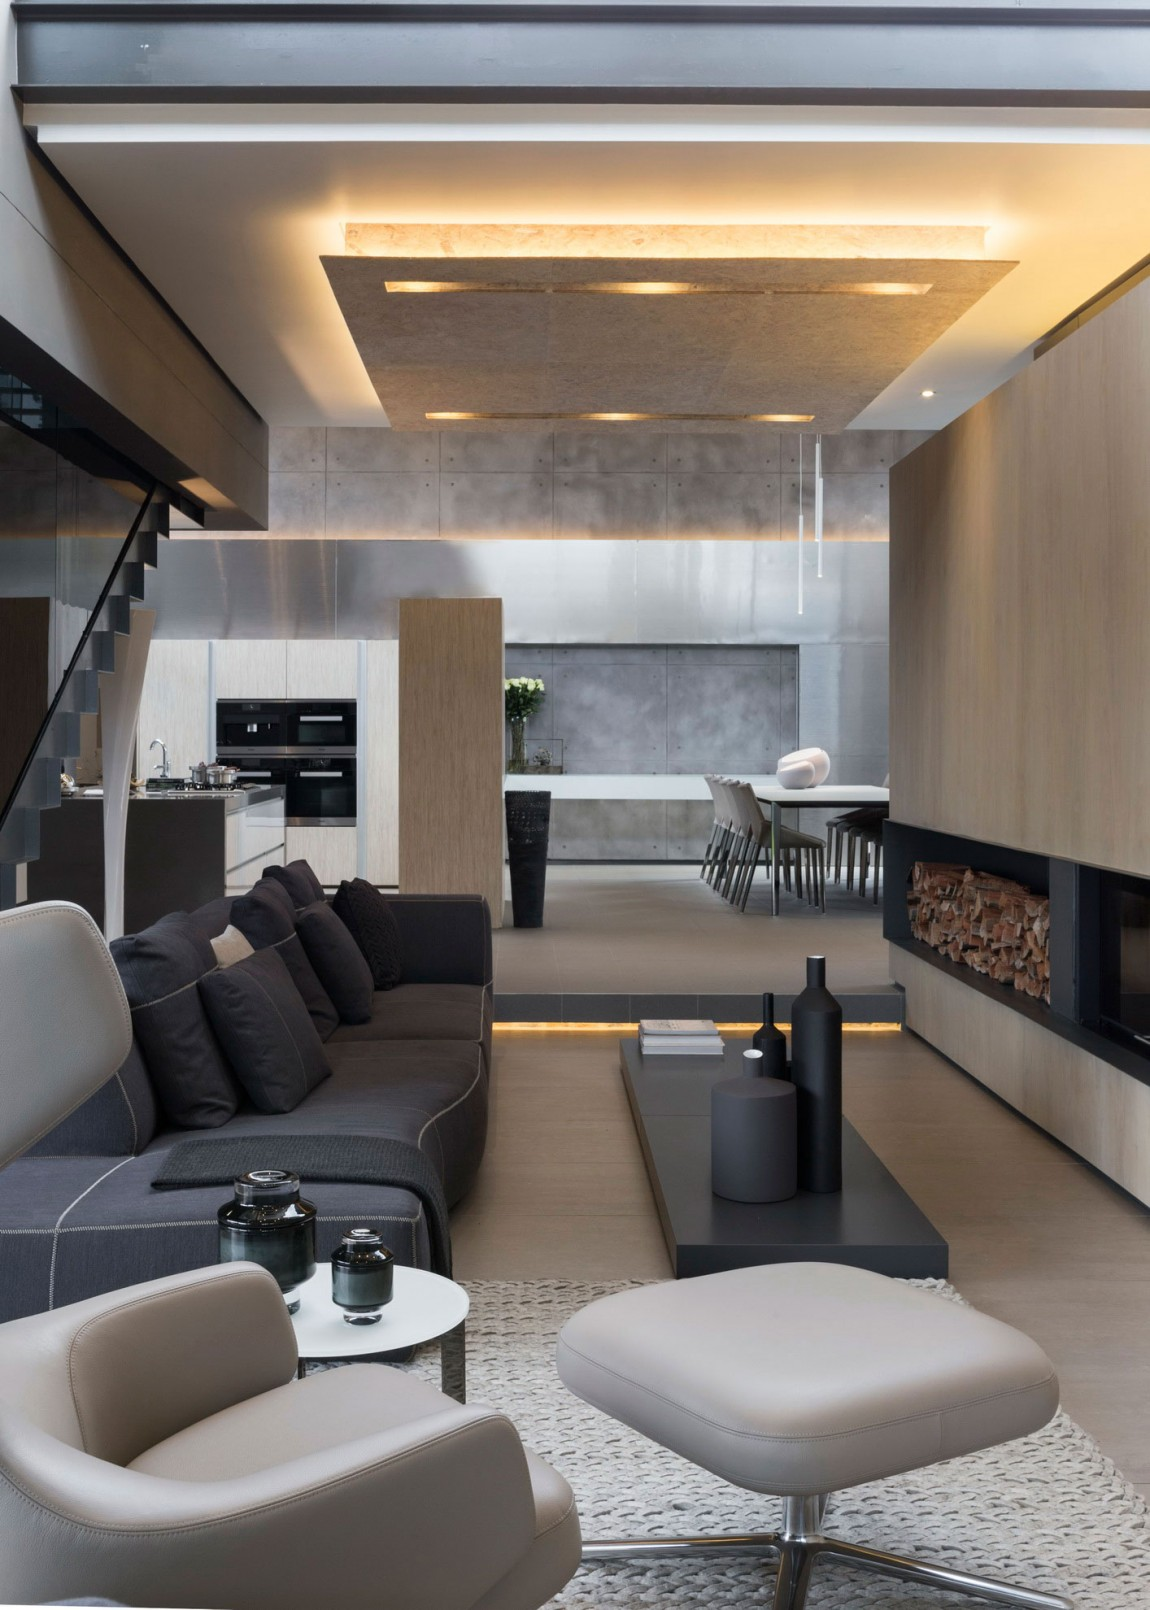 Living room in House Sar by Nico van der Meulen Architects